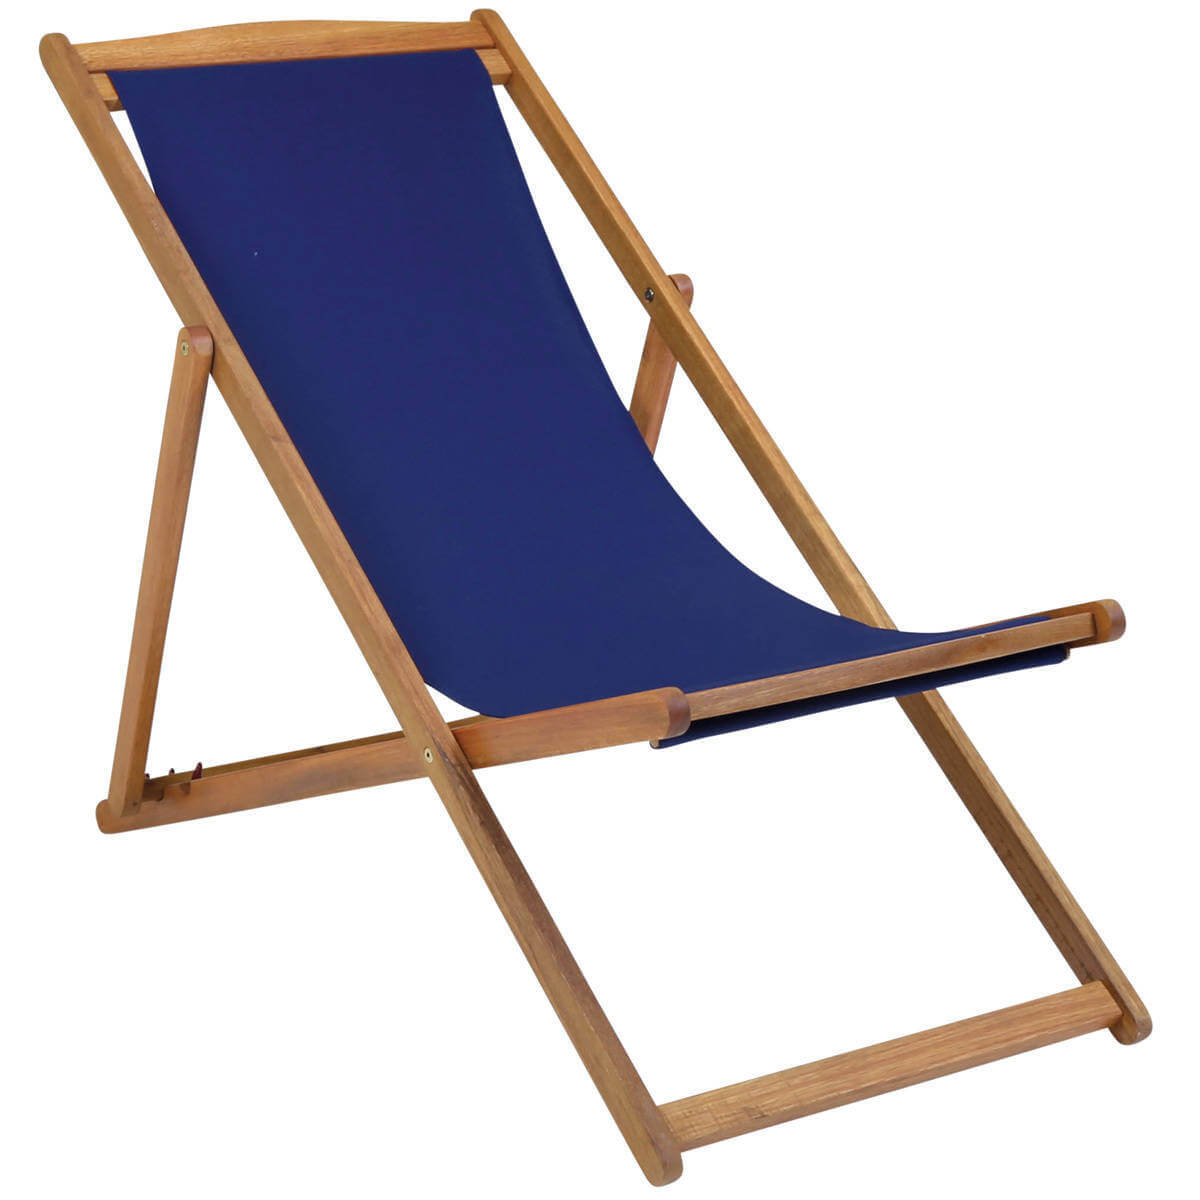 deck chairs glgfdc-charles-bentley-wooden-deck-chair-blue-2 WVBSIKW